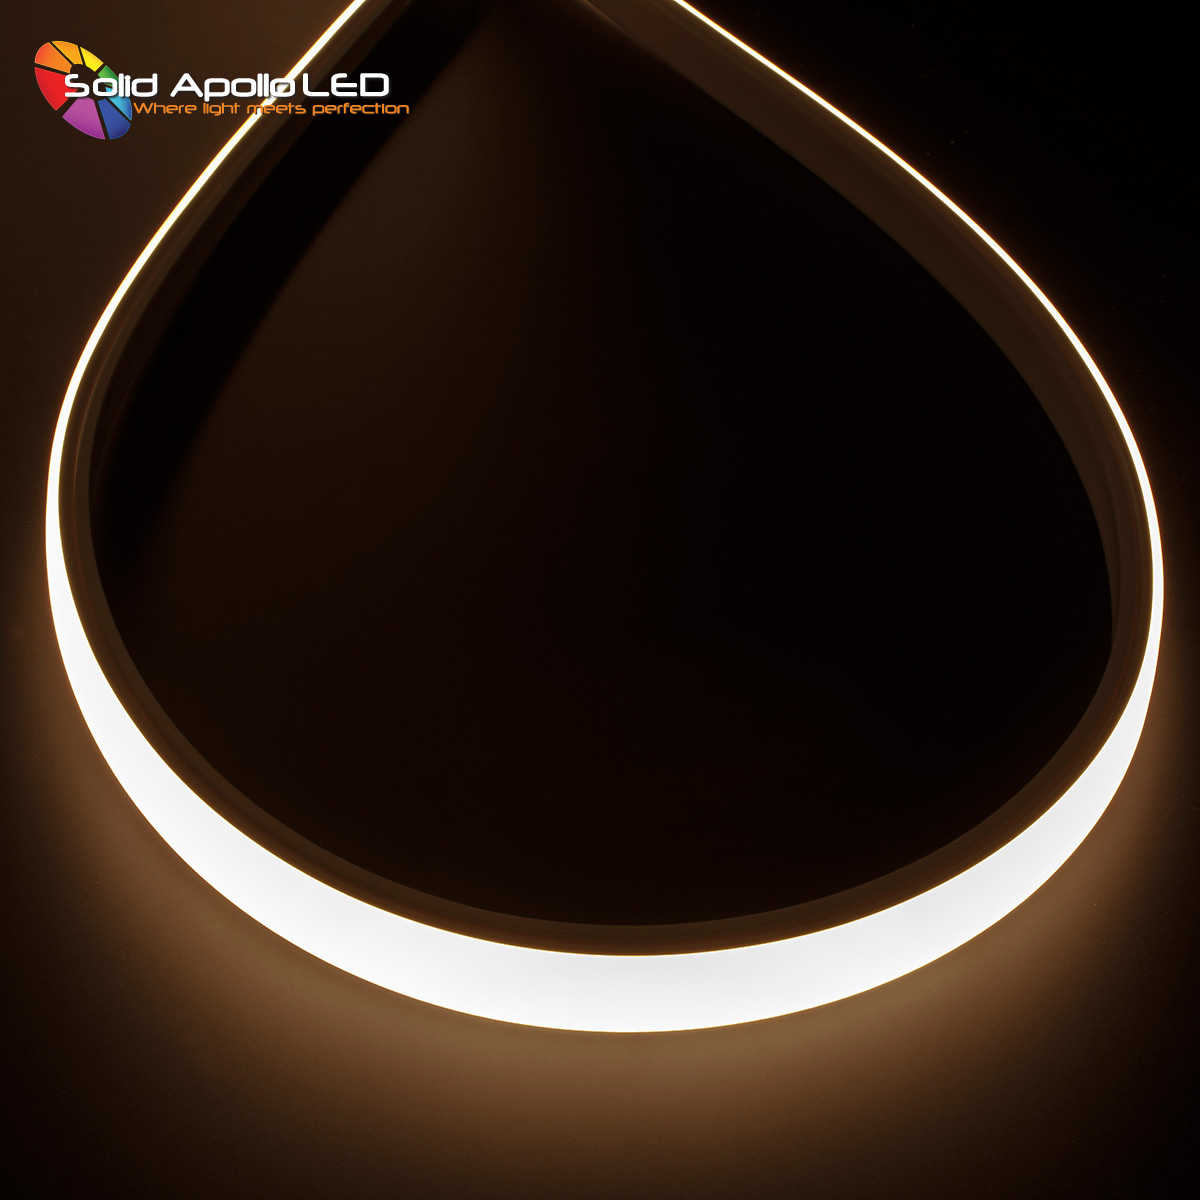 North Seattle Lighting Company Solid Apollo LED Introduces